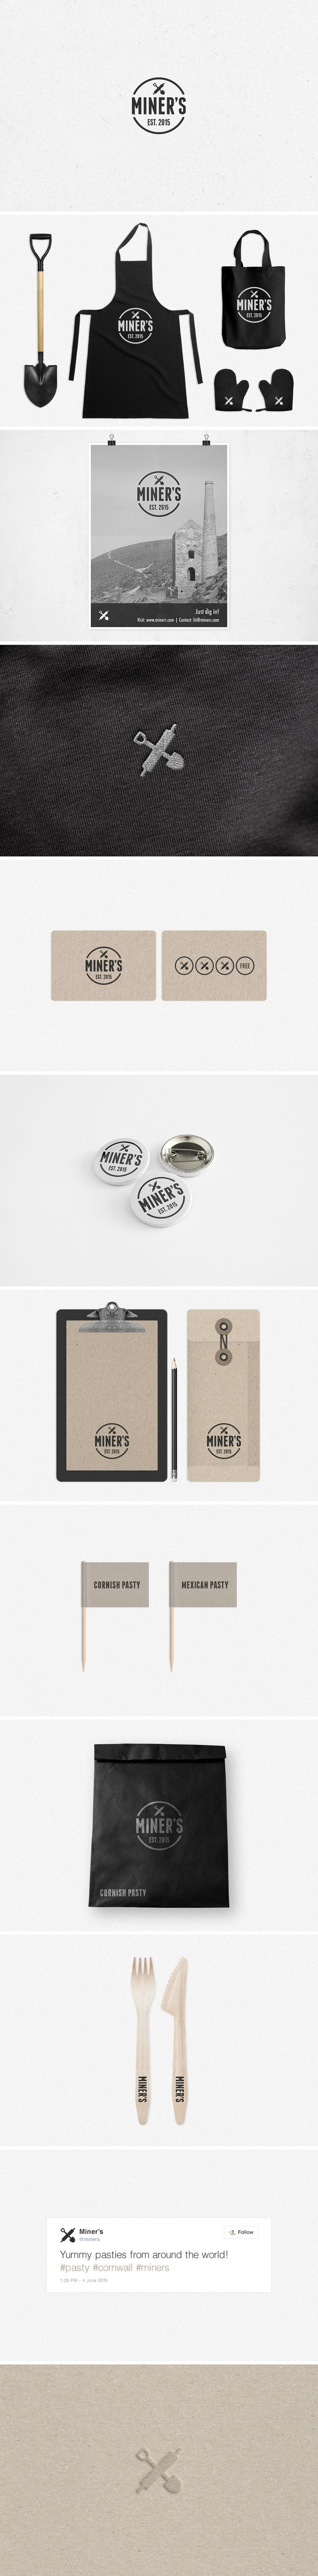 Miners Bakery Brand #brand #miners #bakery #pasty #logo #graphicdesign #identity